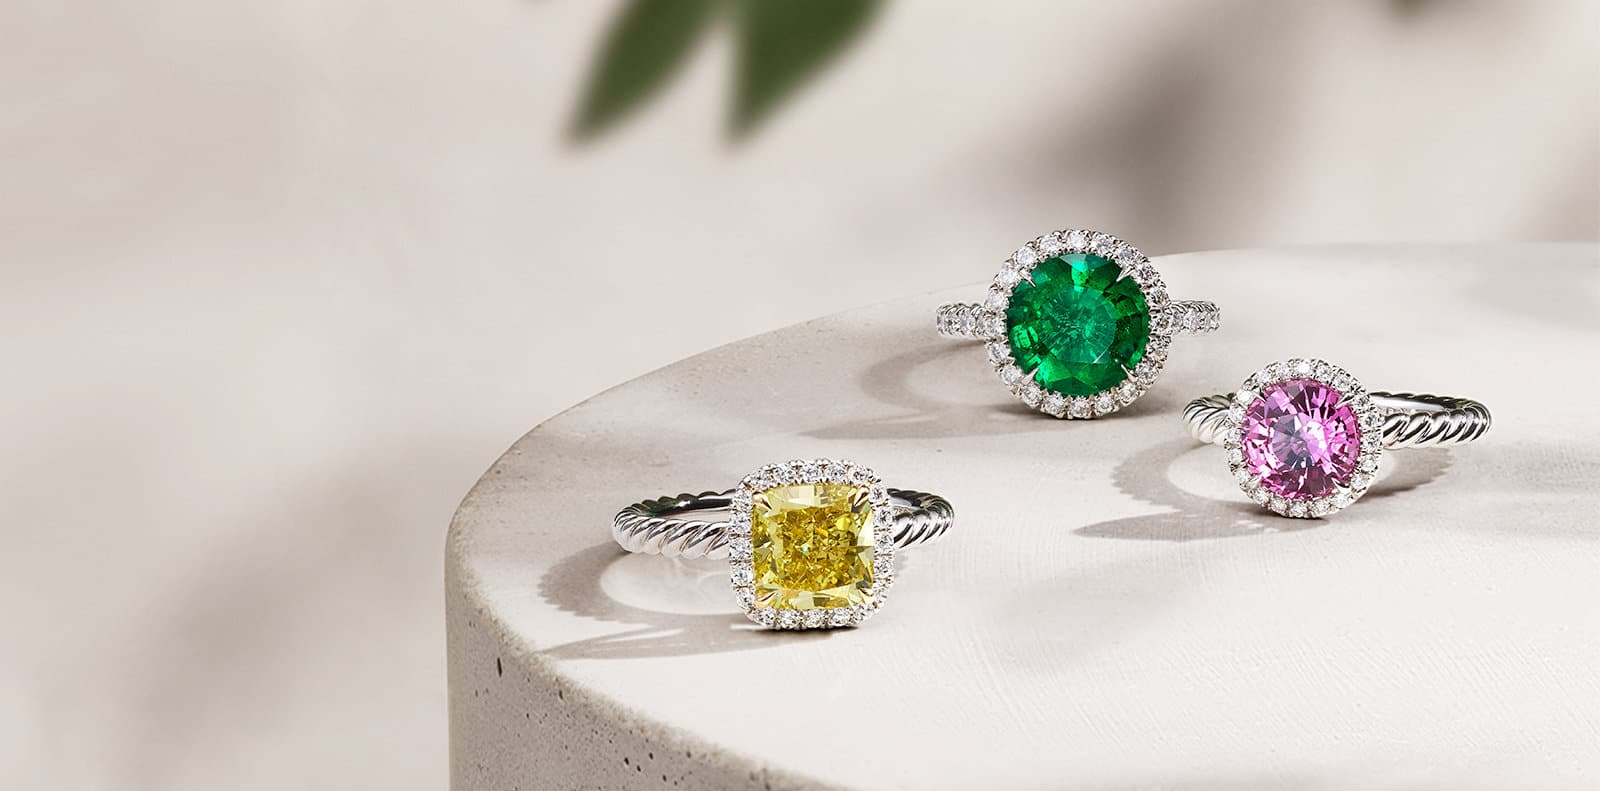 David Yurman DY Capri engagement rings in platinum with white diamonds and a yellow diamond, emerald or pink sapphire center stone, all in a group casting long shadows on a beige stone surface with green leaves in the background.